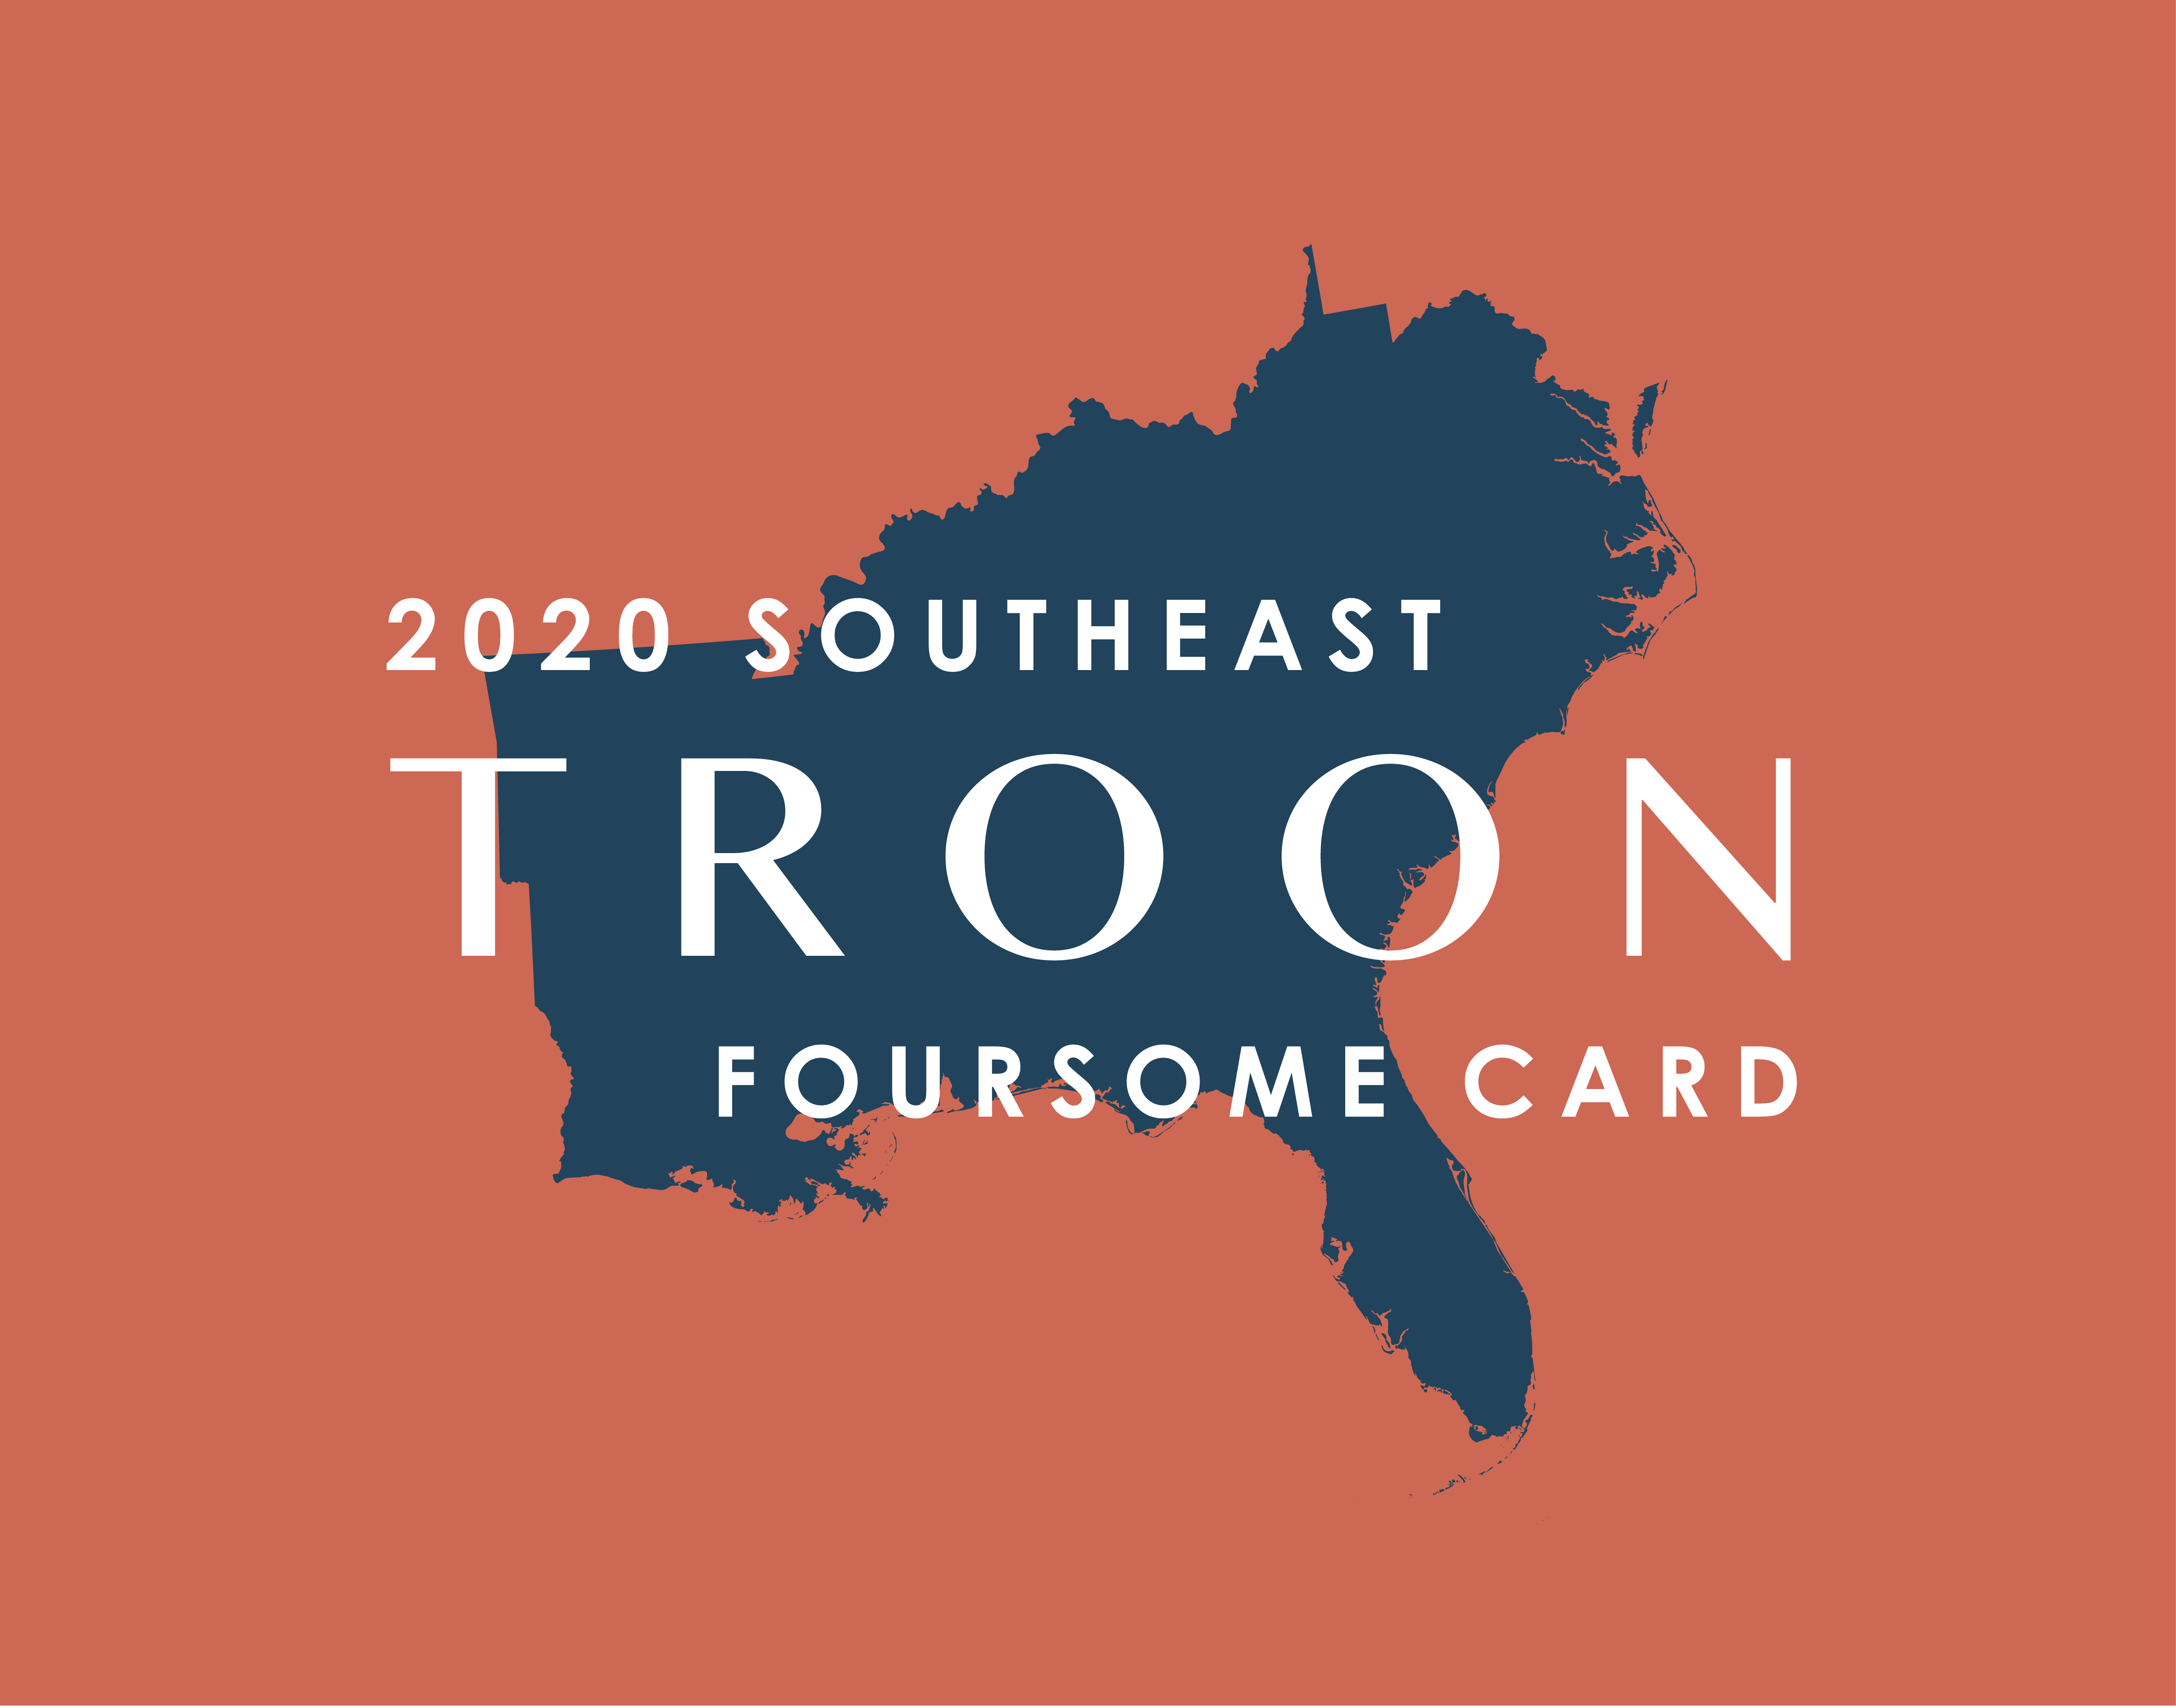 2020 Southeast FourSome Card